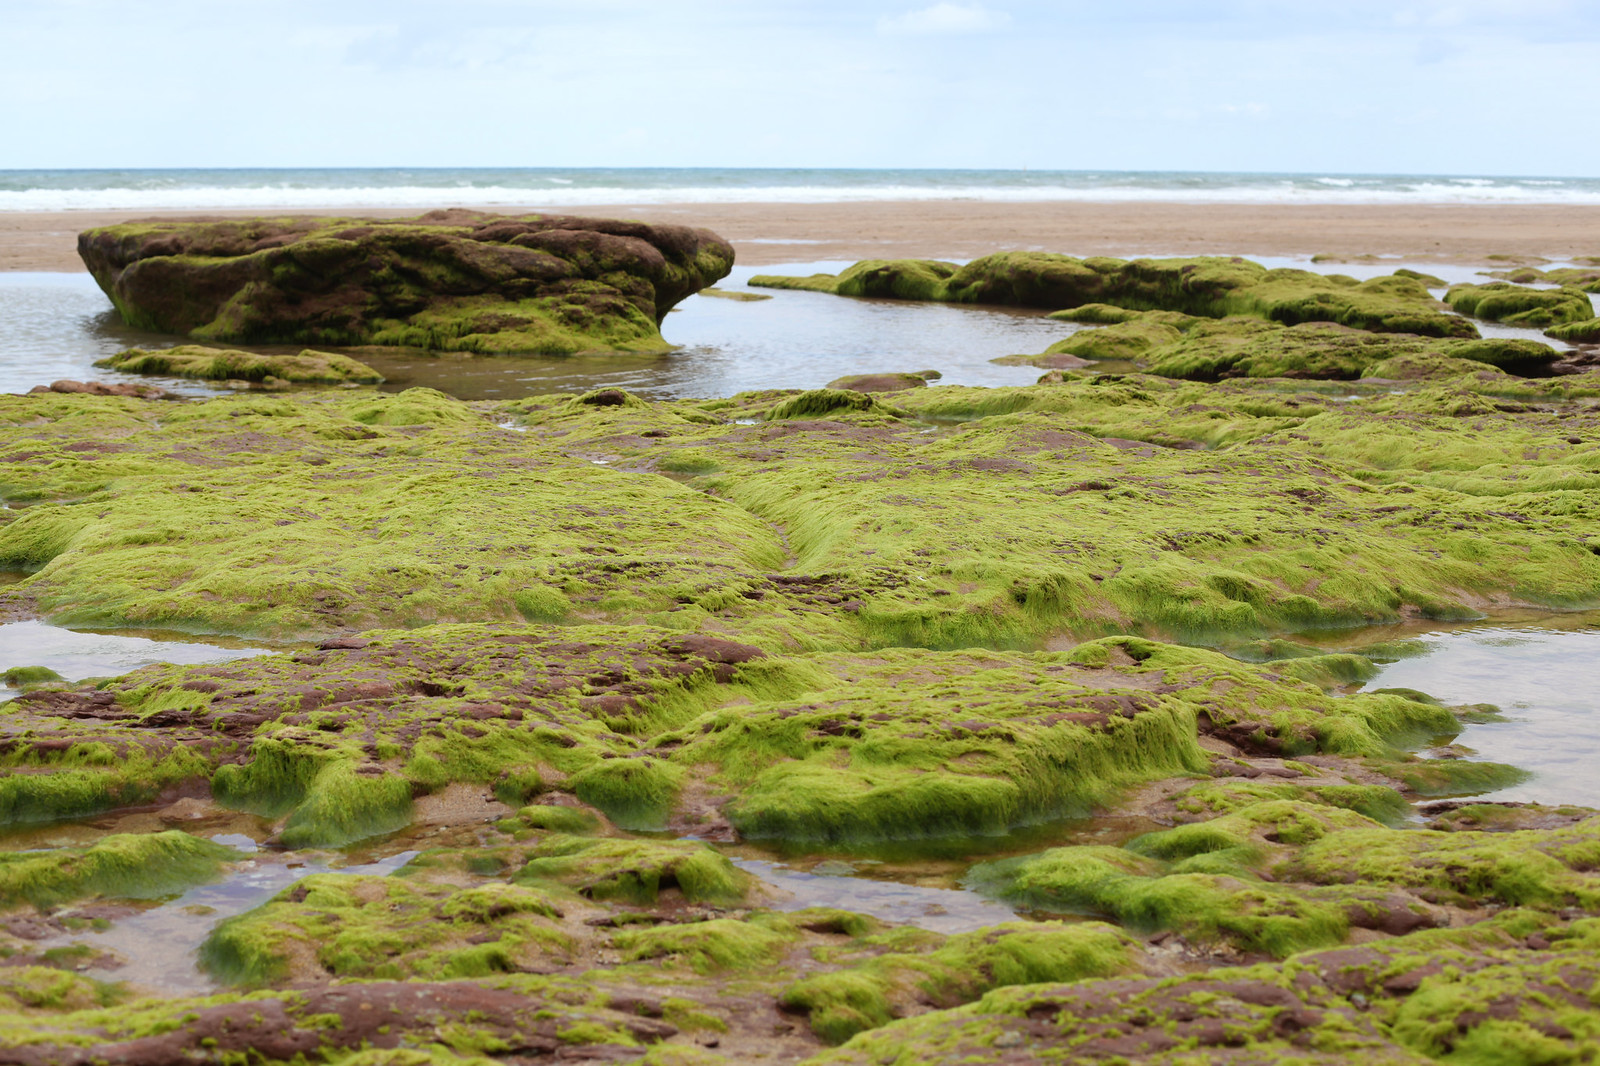 manlul_post_beach_moss_